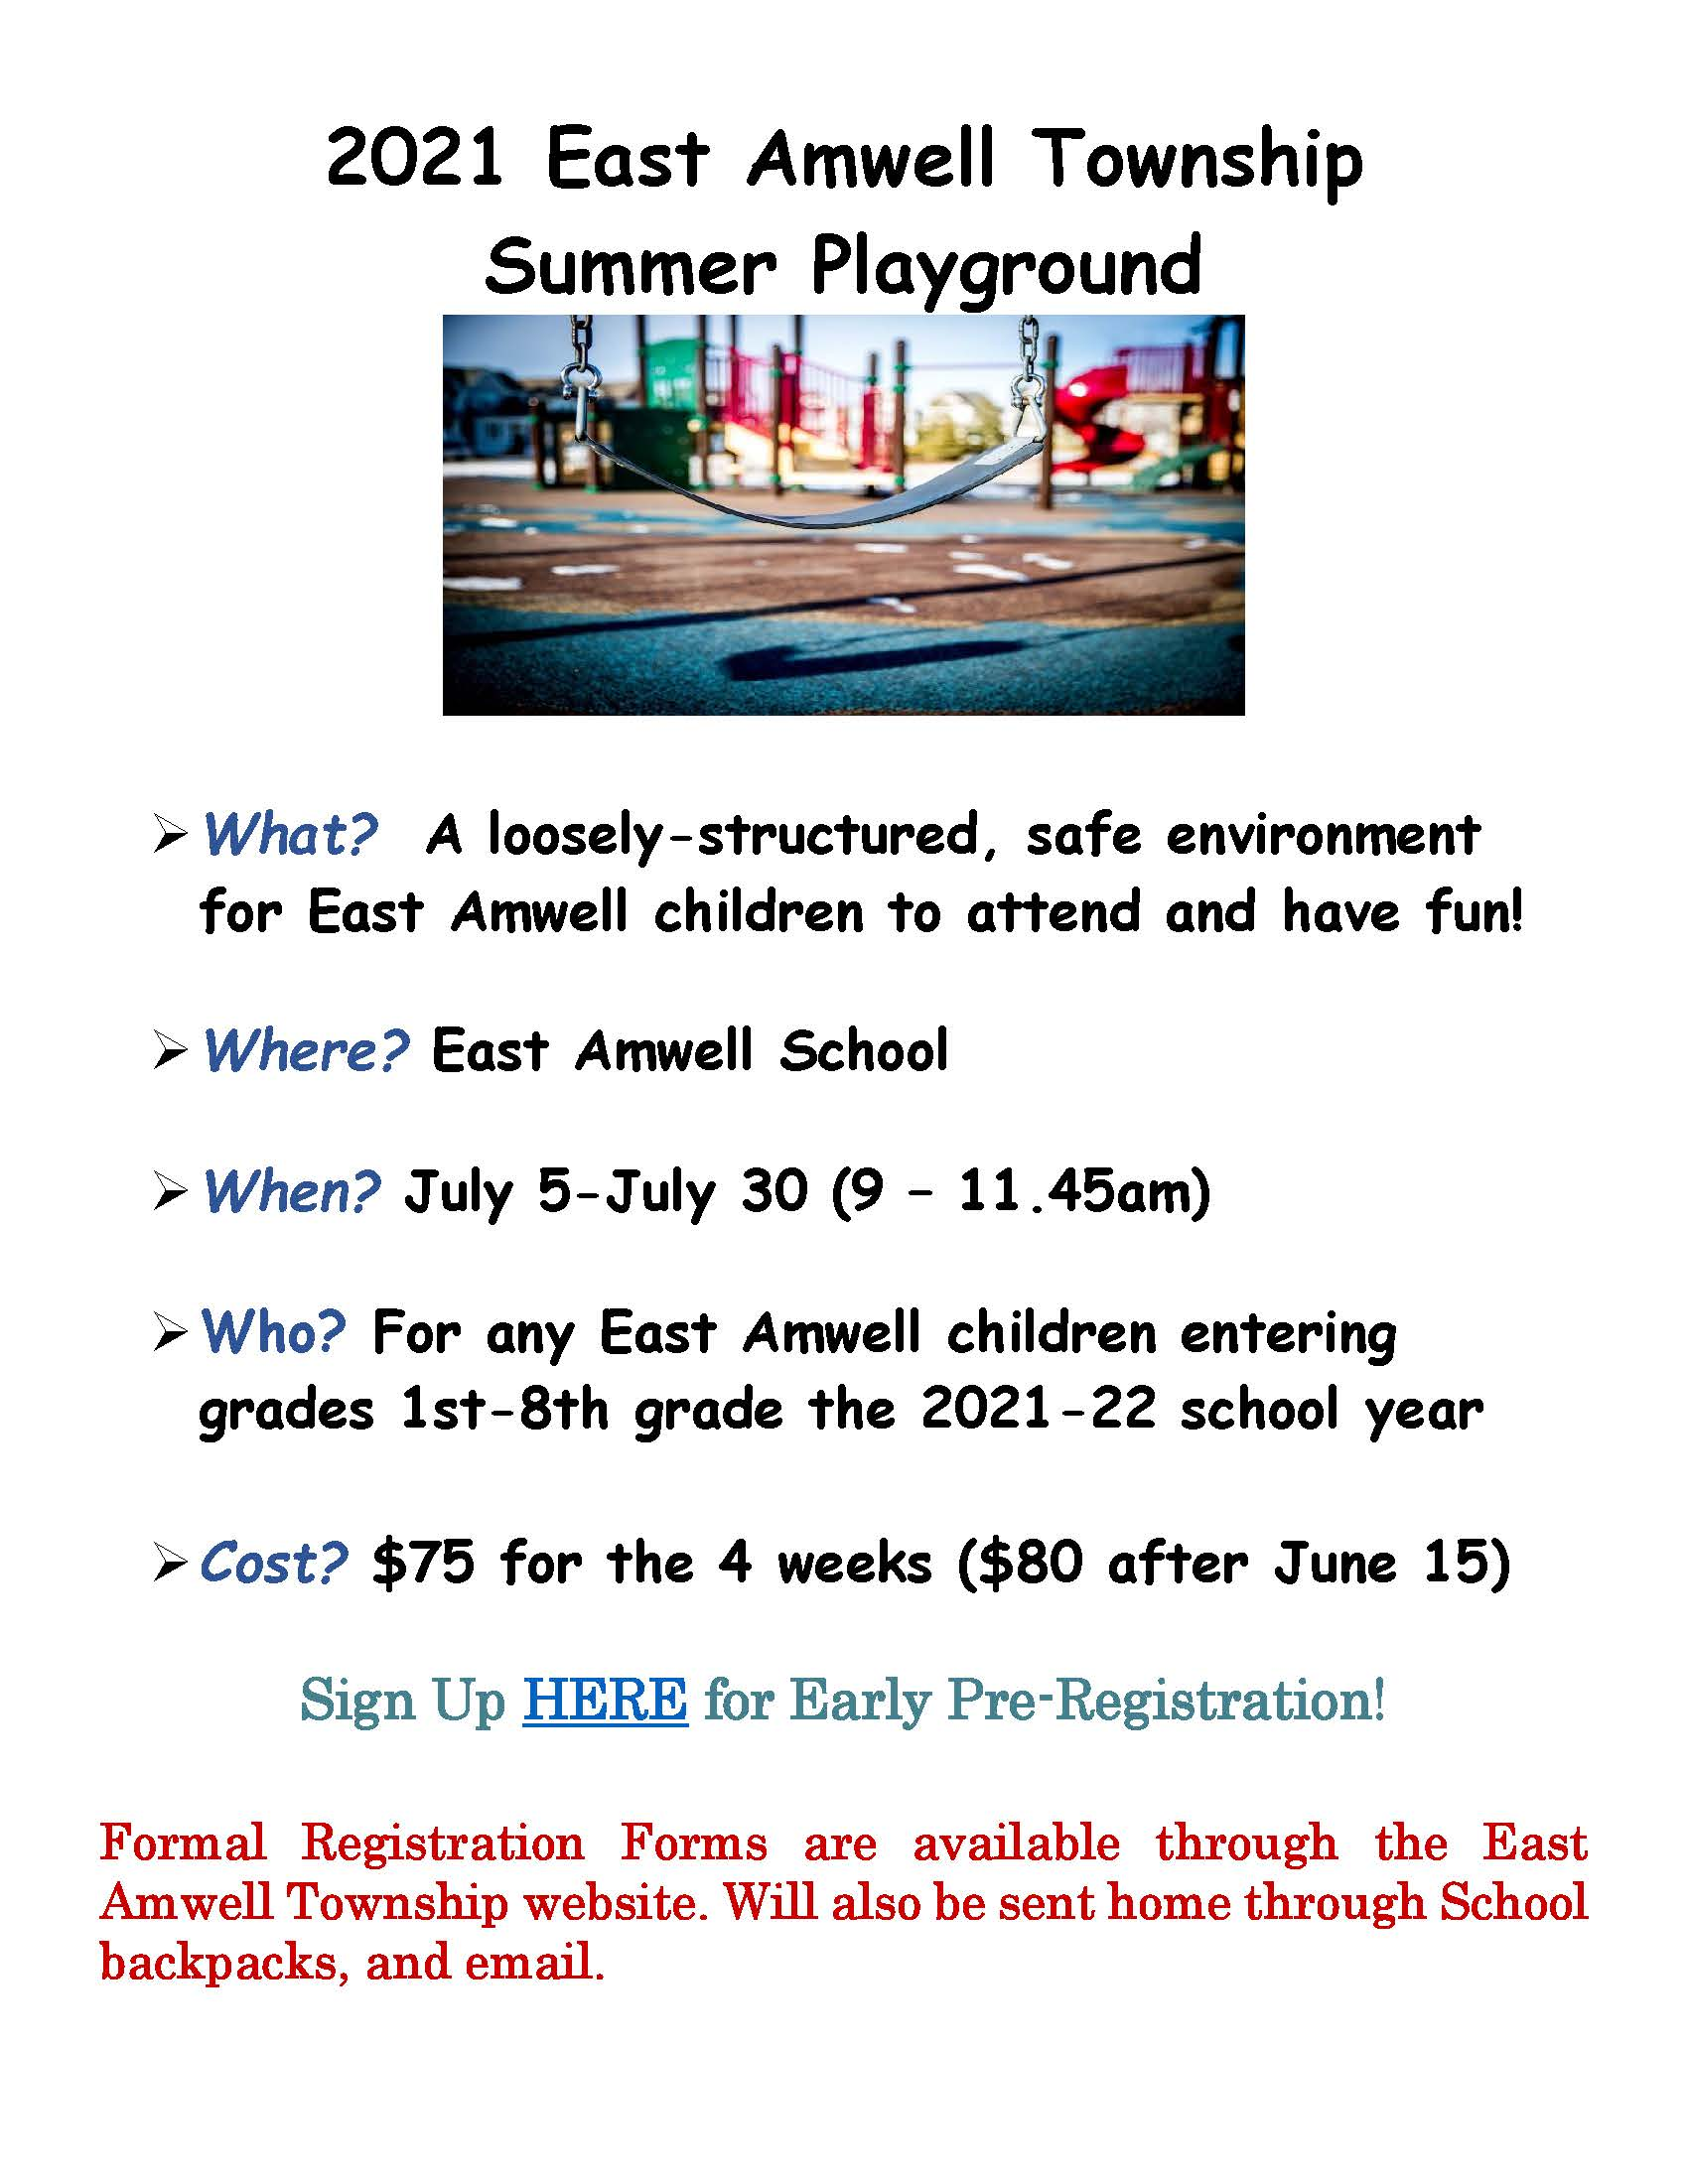 2021 East Amwell Township Summer Playground Flyer Opens in new window